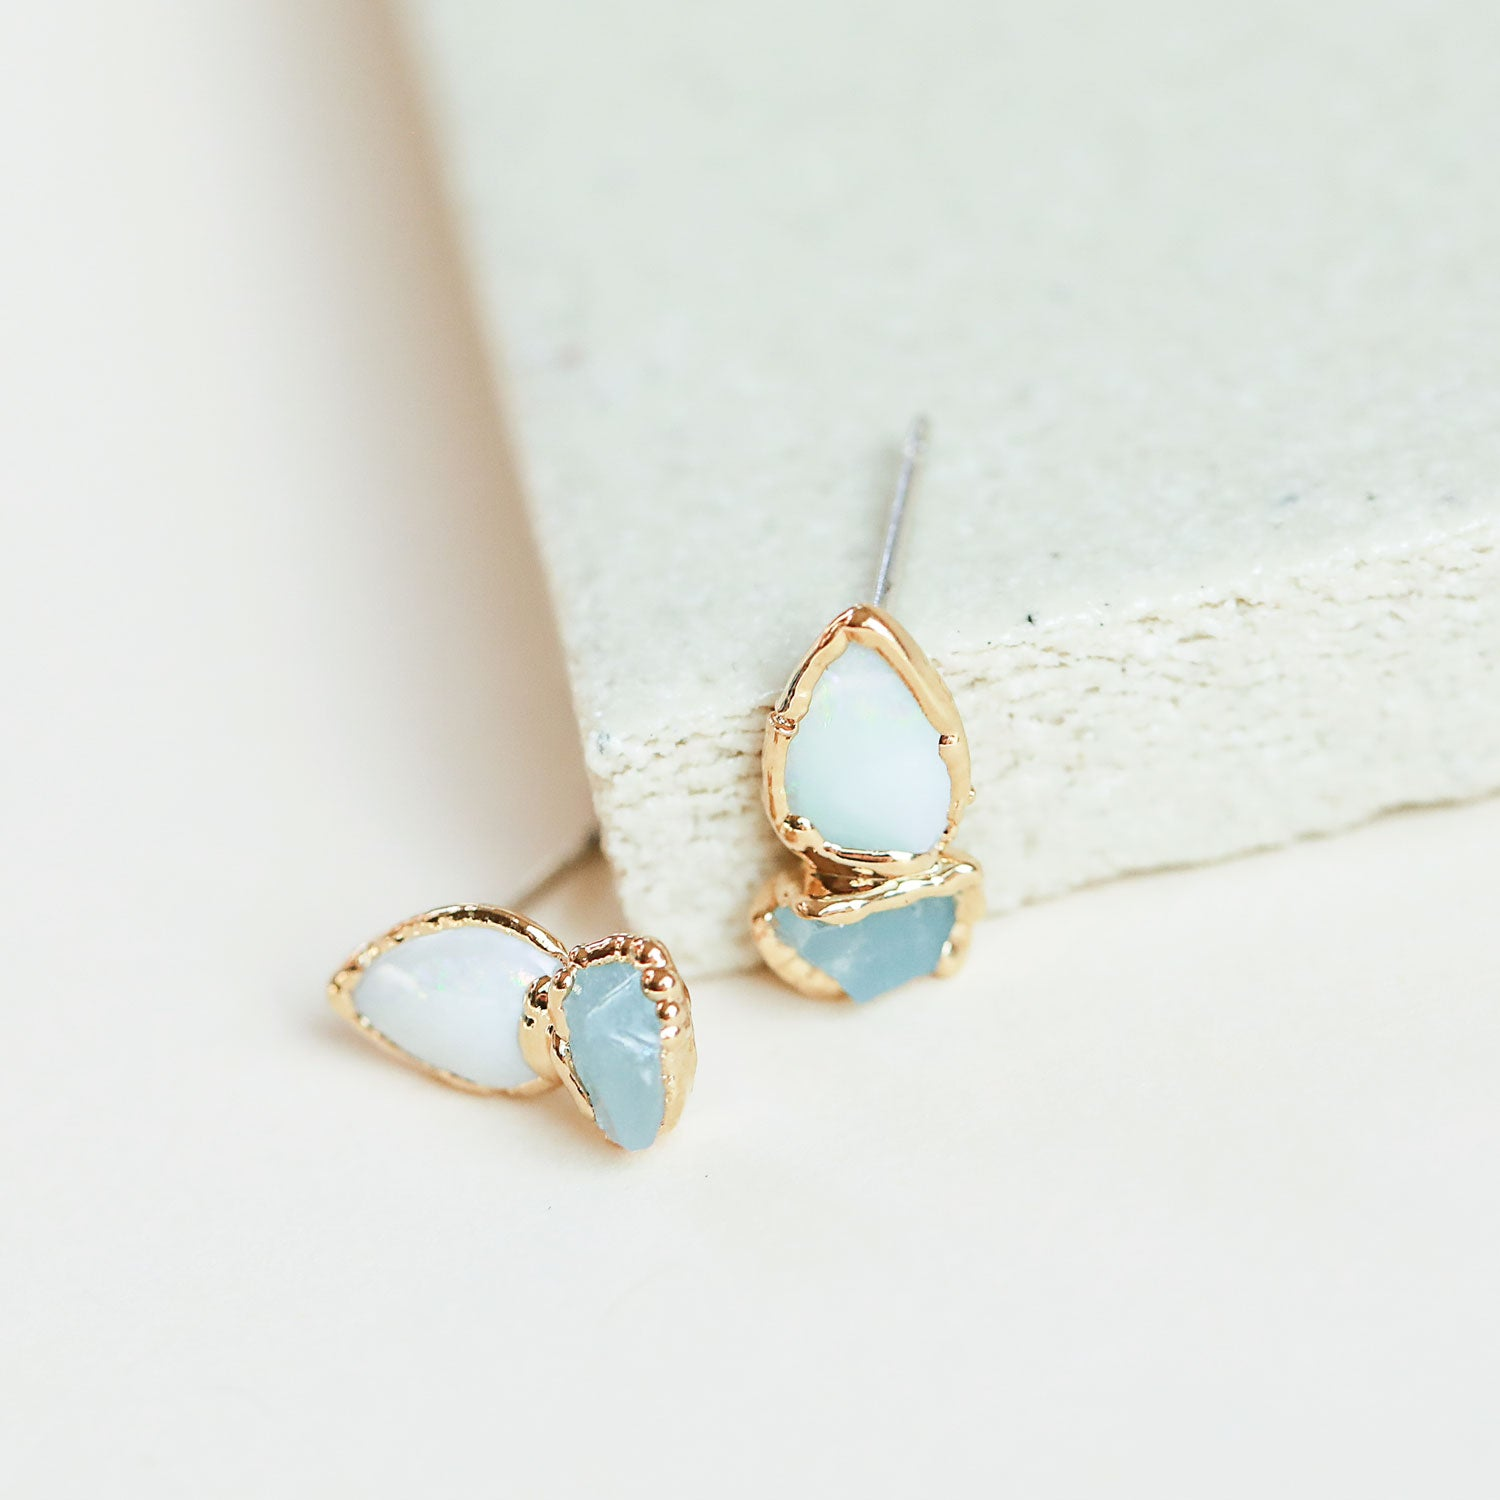 Opal and Raw Aquamarine Studs for March Birthstone